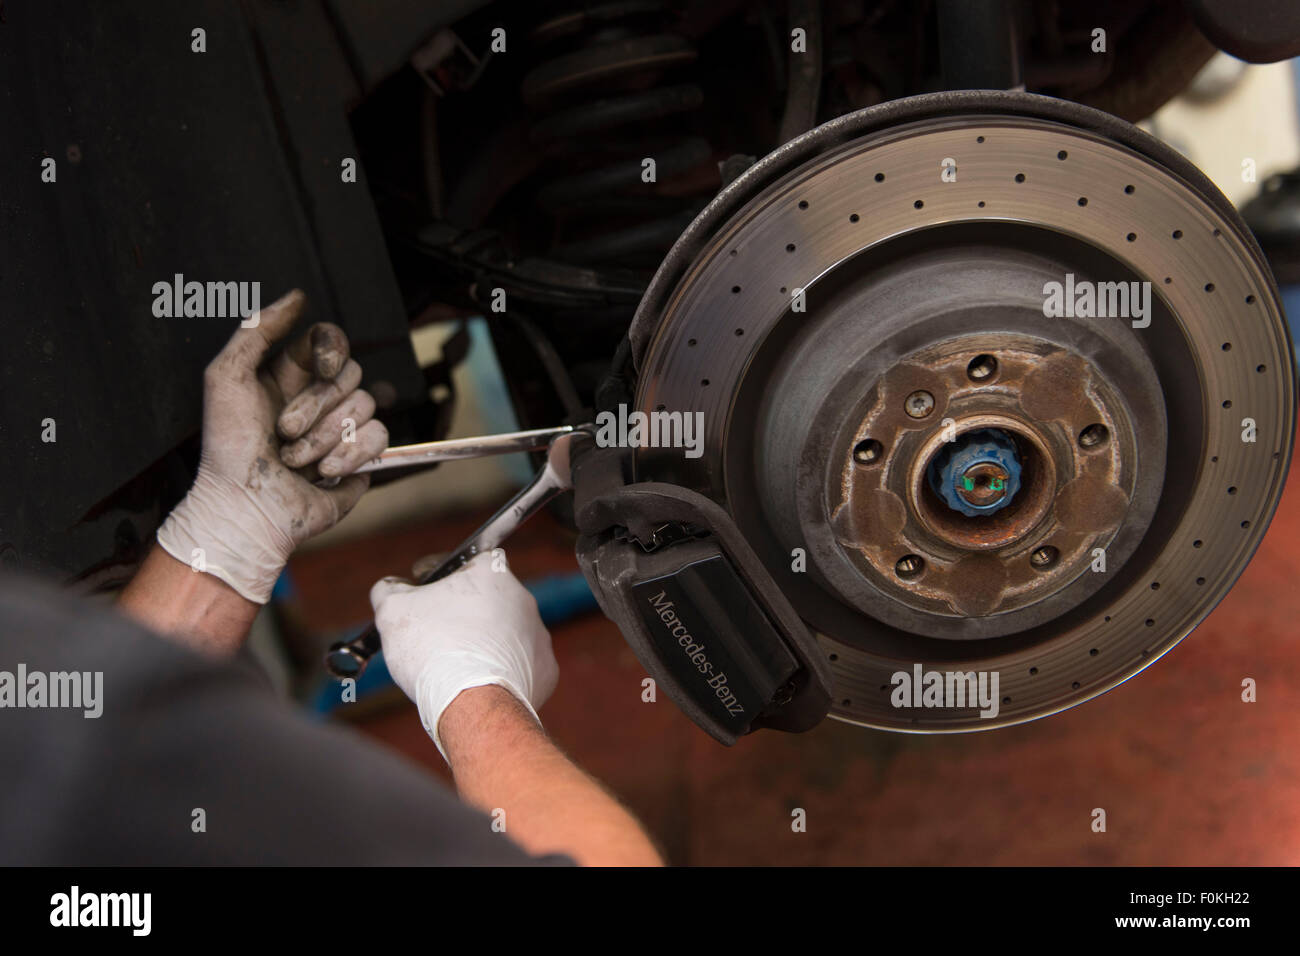 A car mechanic fits new brake pads to a car in a car garage during an MOT. - Stock Image